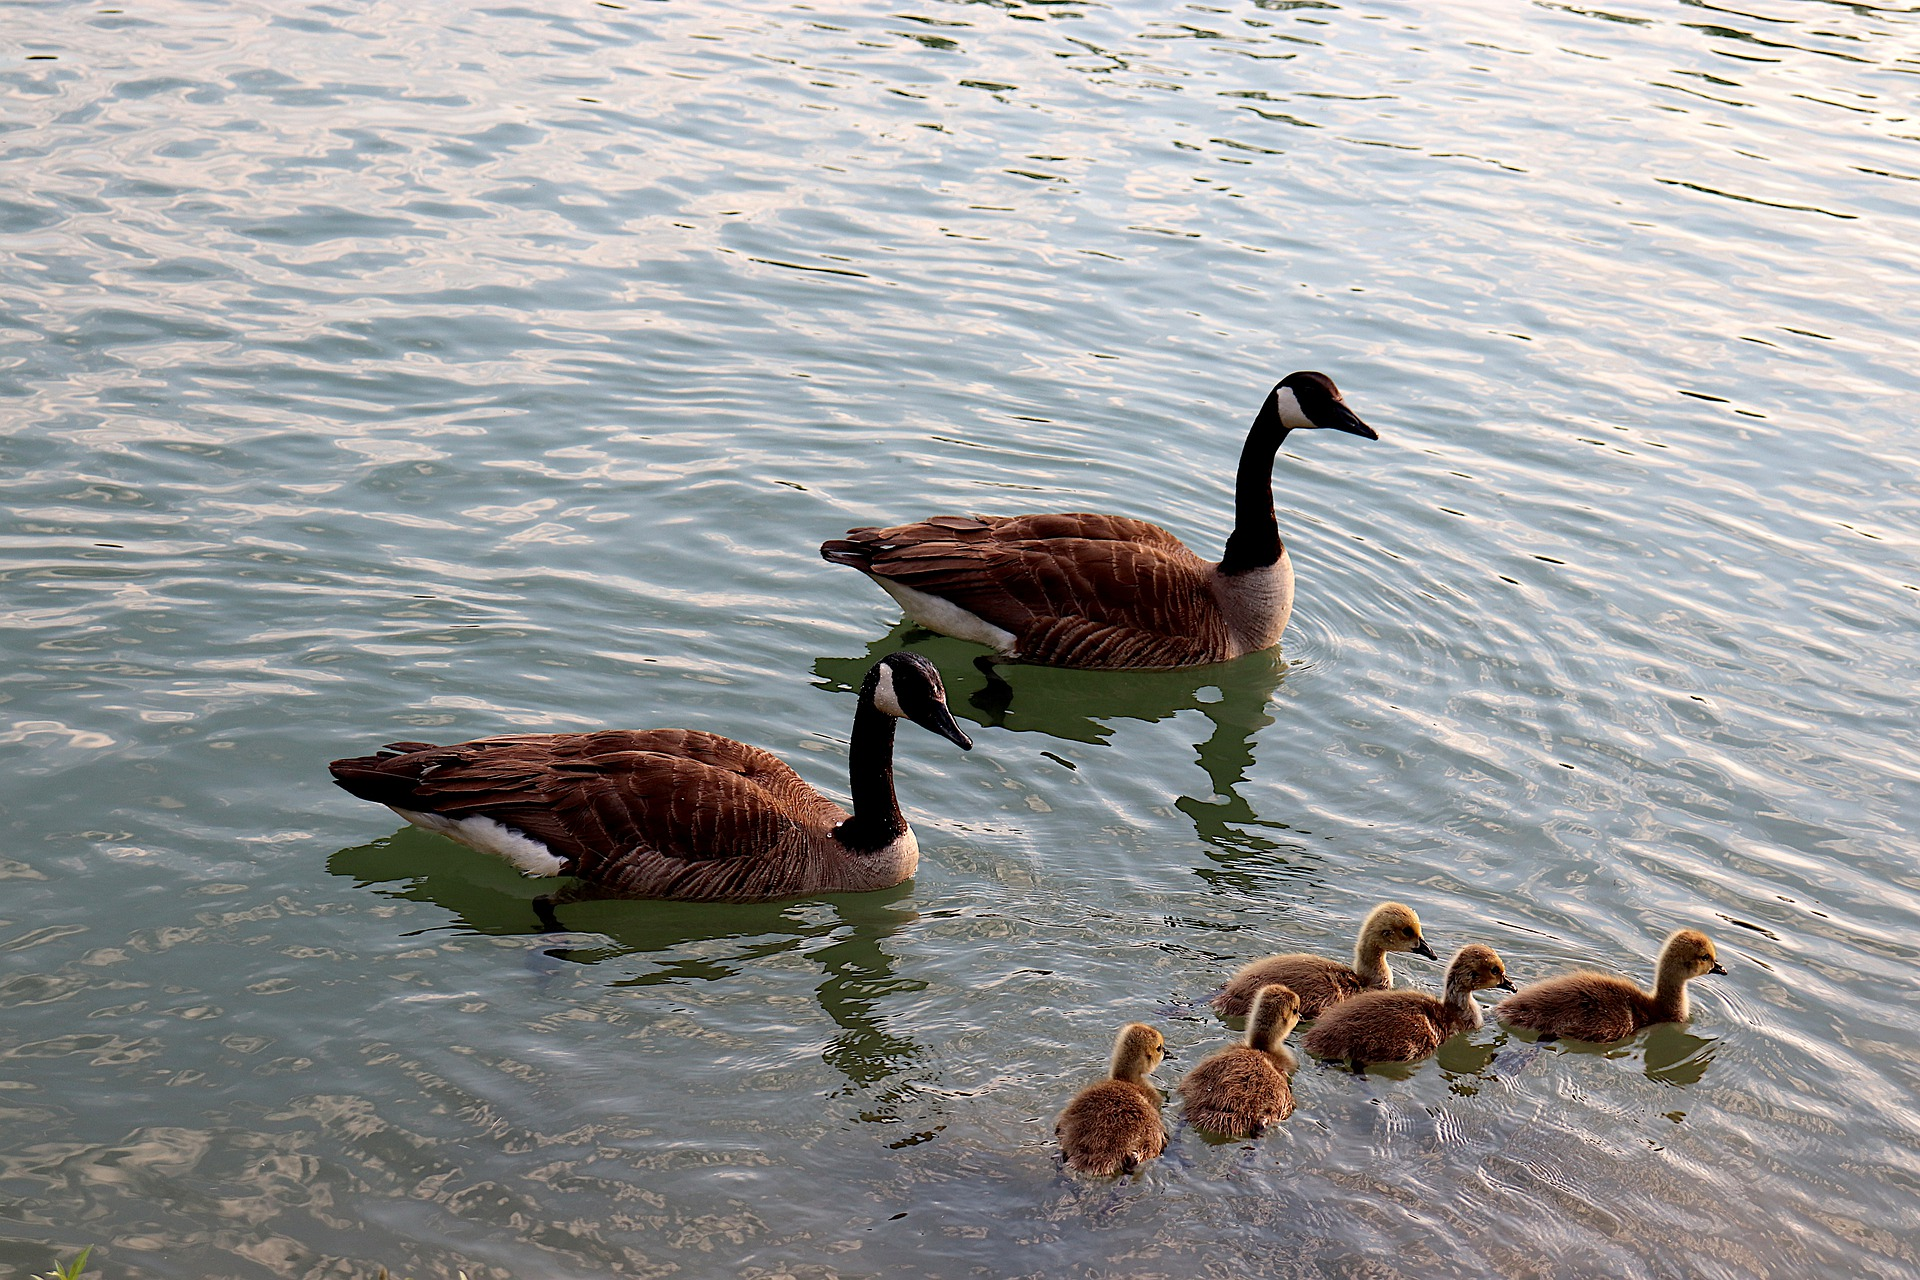 geese-5254694_1920